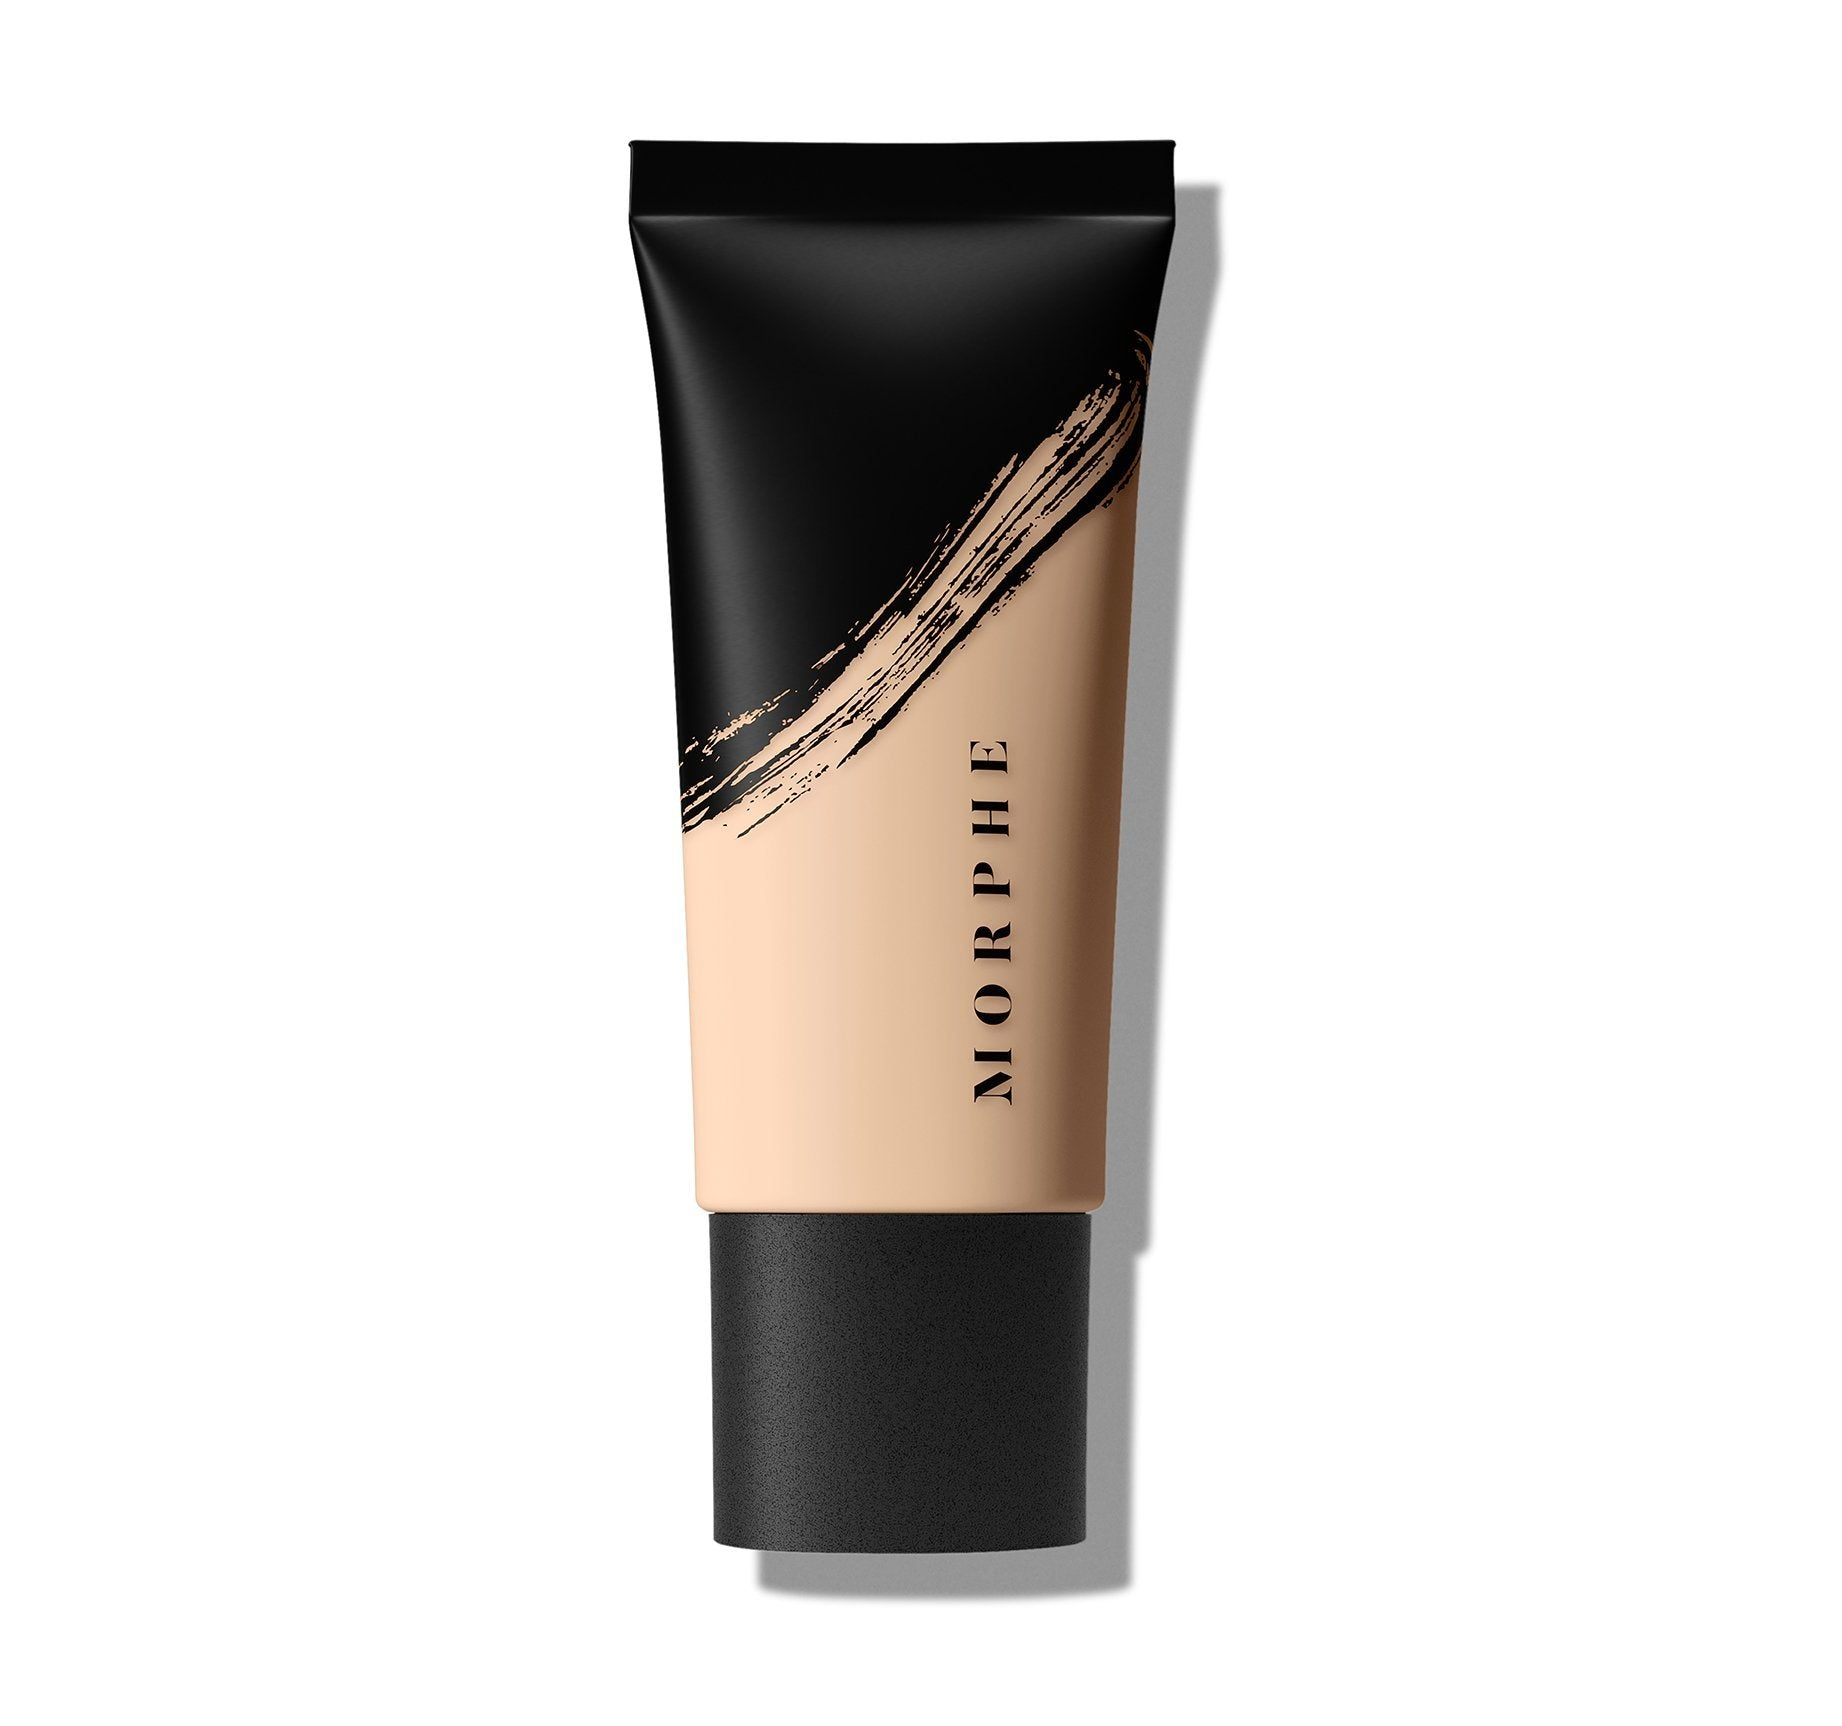 FLUIDITY FULL-COVERAGE FOUNDATION - F1.50, view larger image